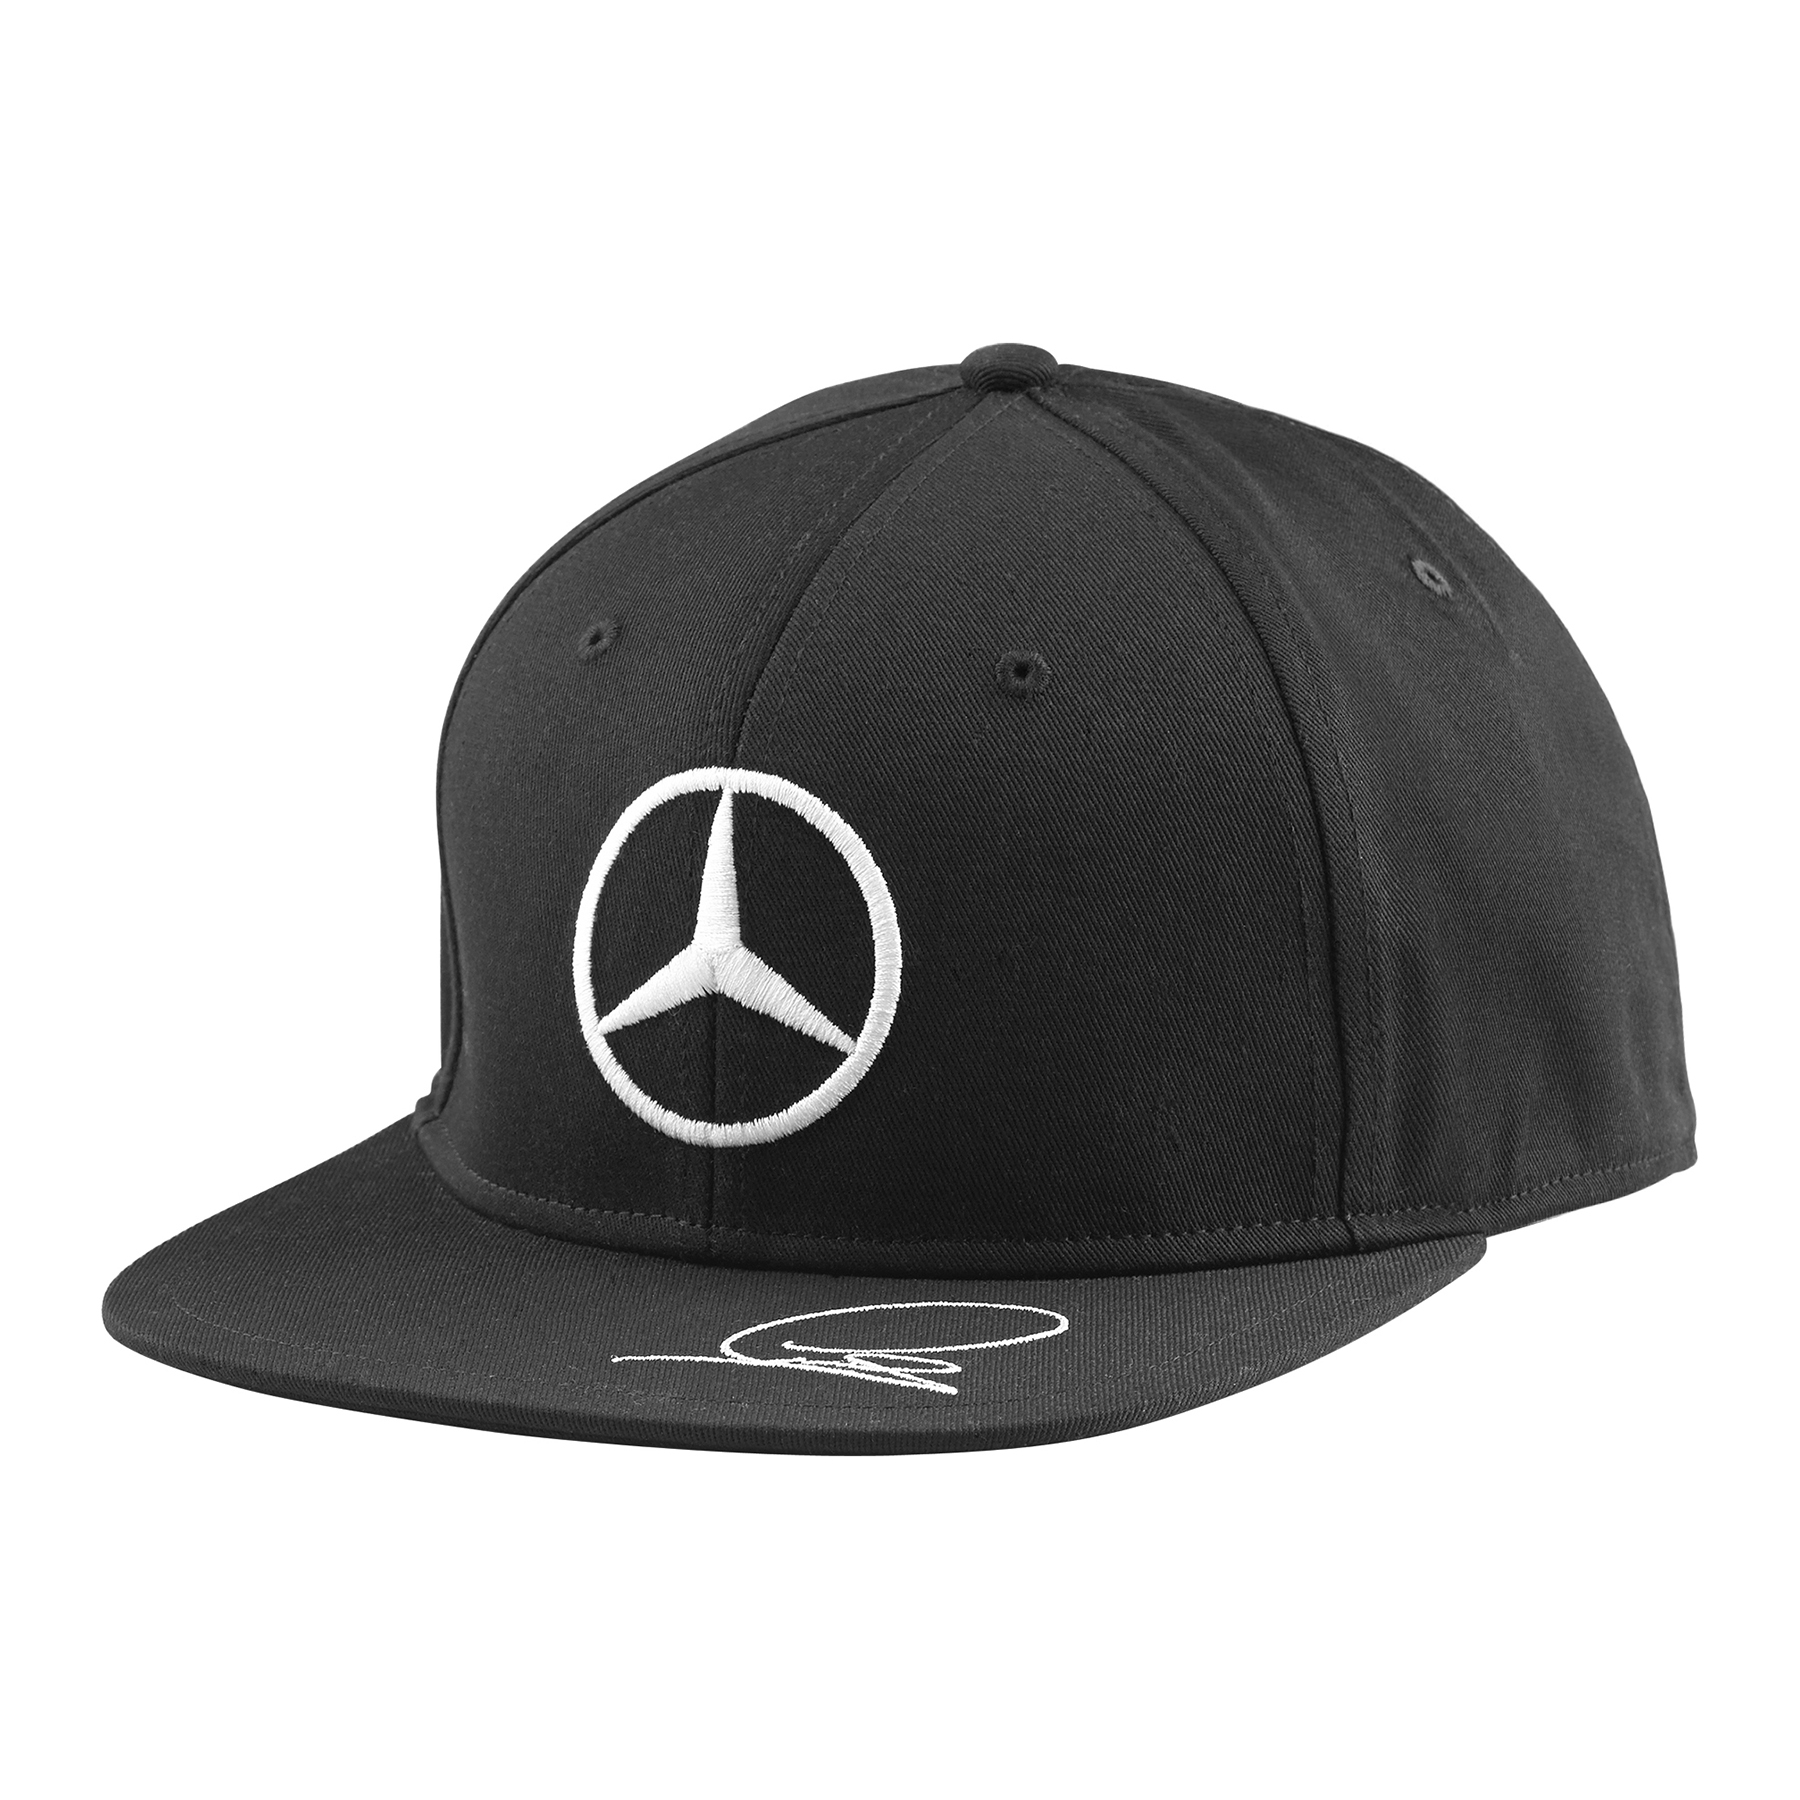 2015 mercedes amg lewis hamilton flat brim cap black or white adult size ebay. Black Bedroom Furniture Sets. Home Design Ideas